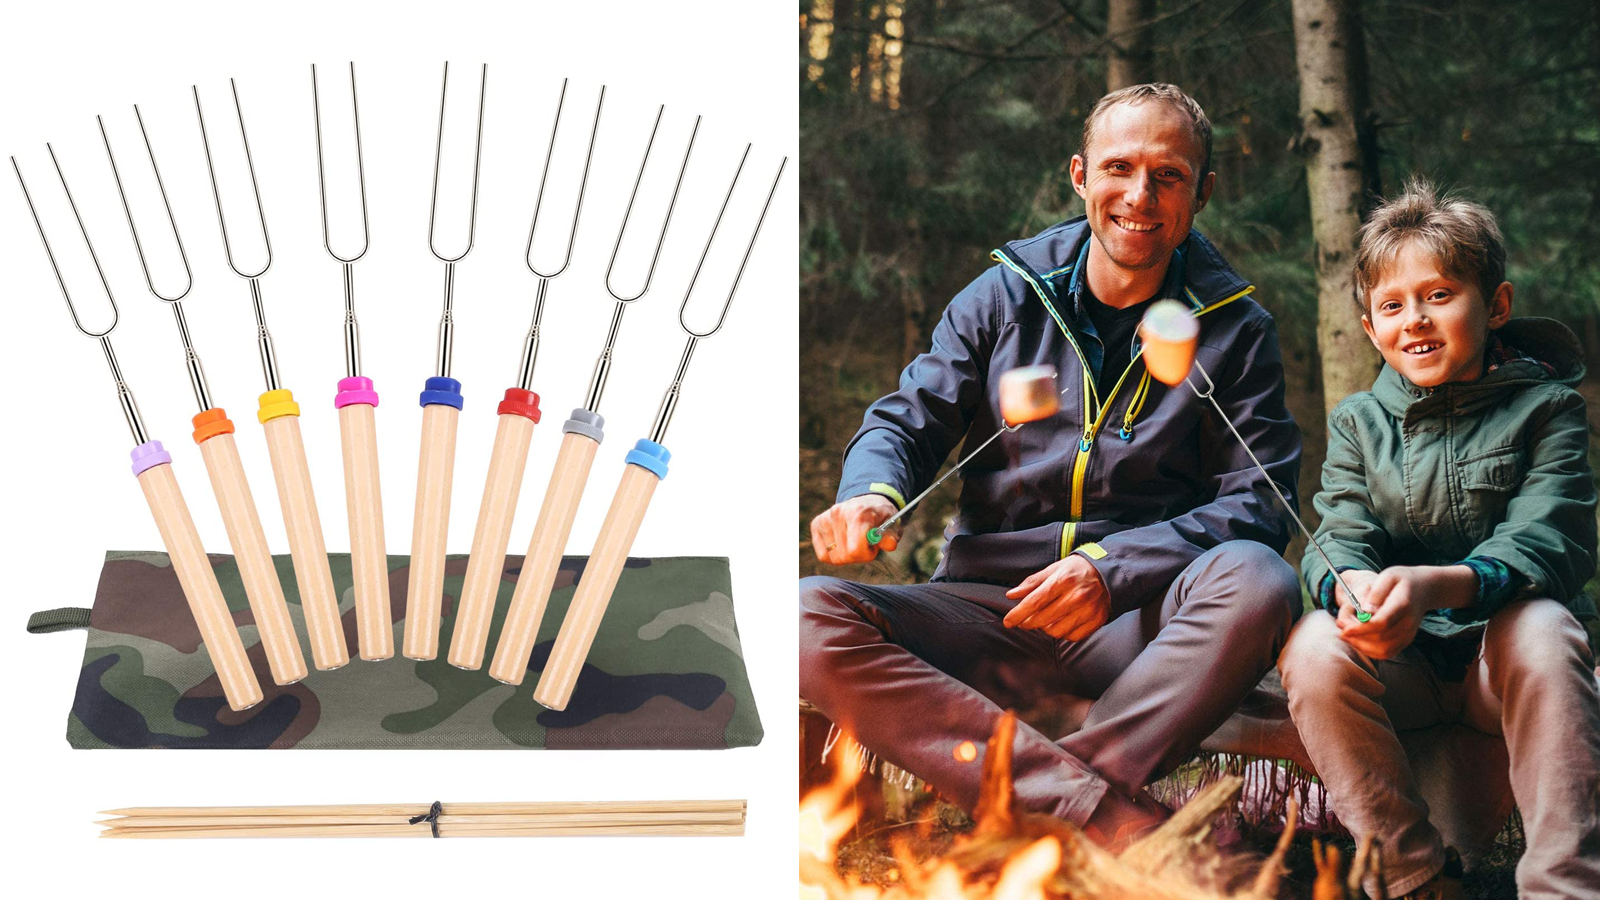 These Colorful Marshmallow Roasting Sticks Are a Must-Have Camping Accessory